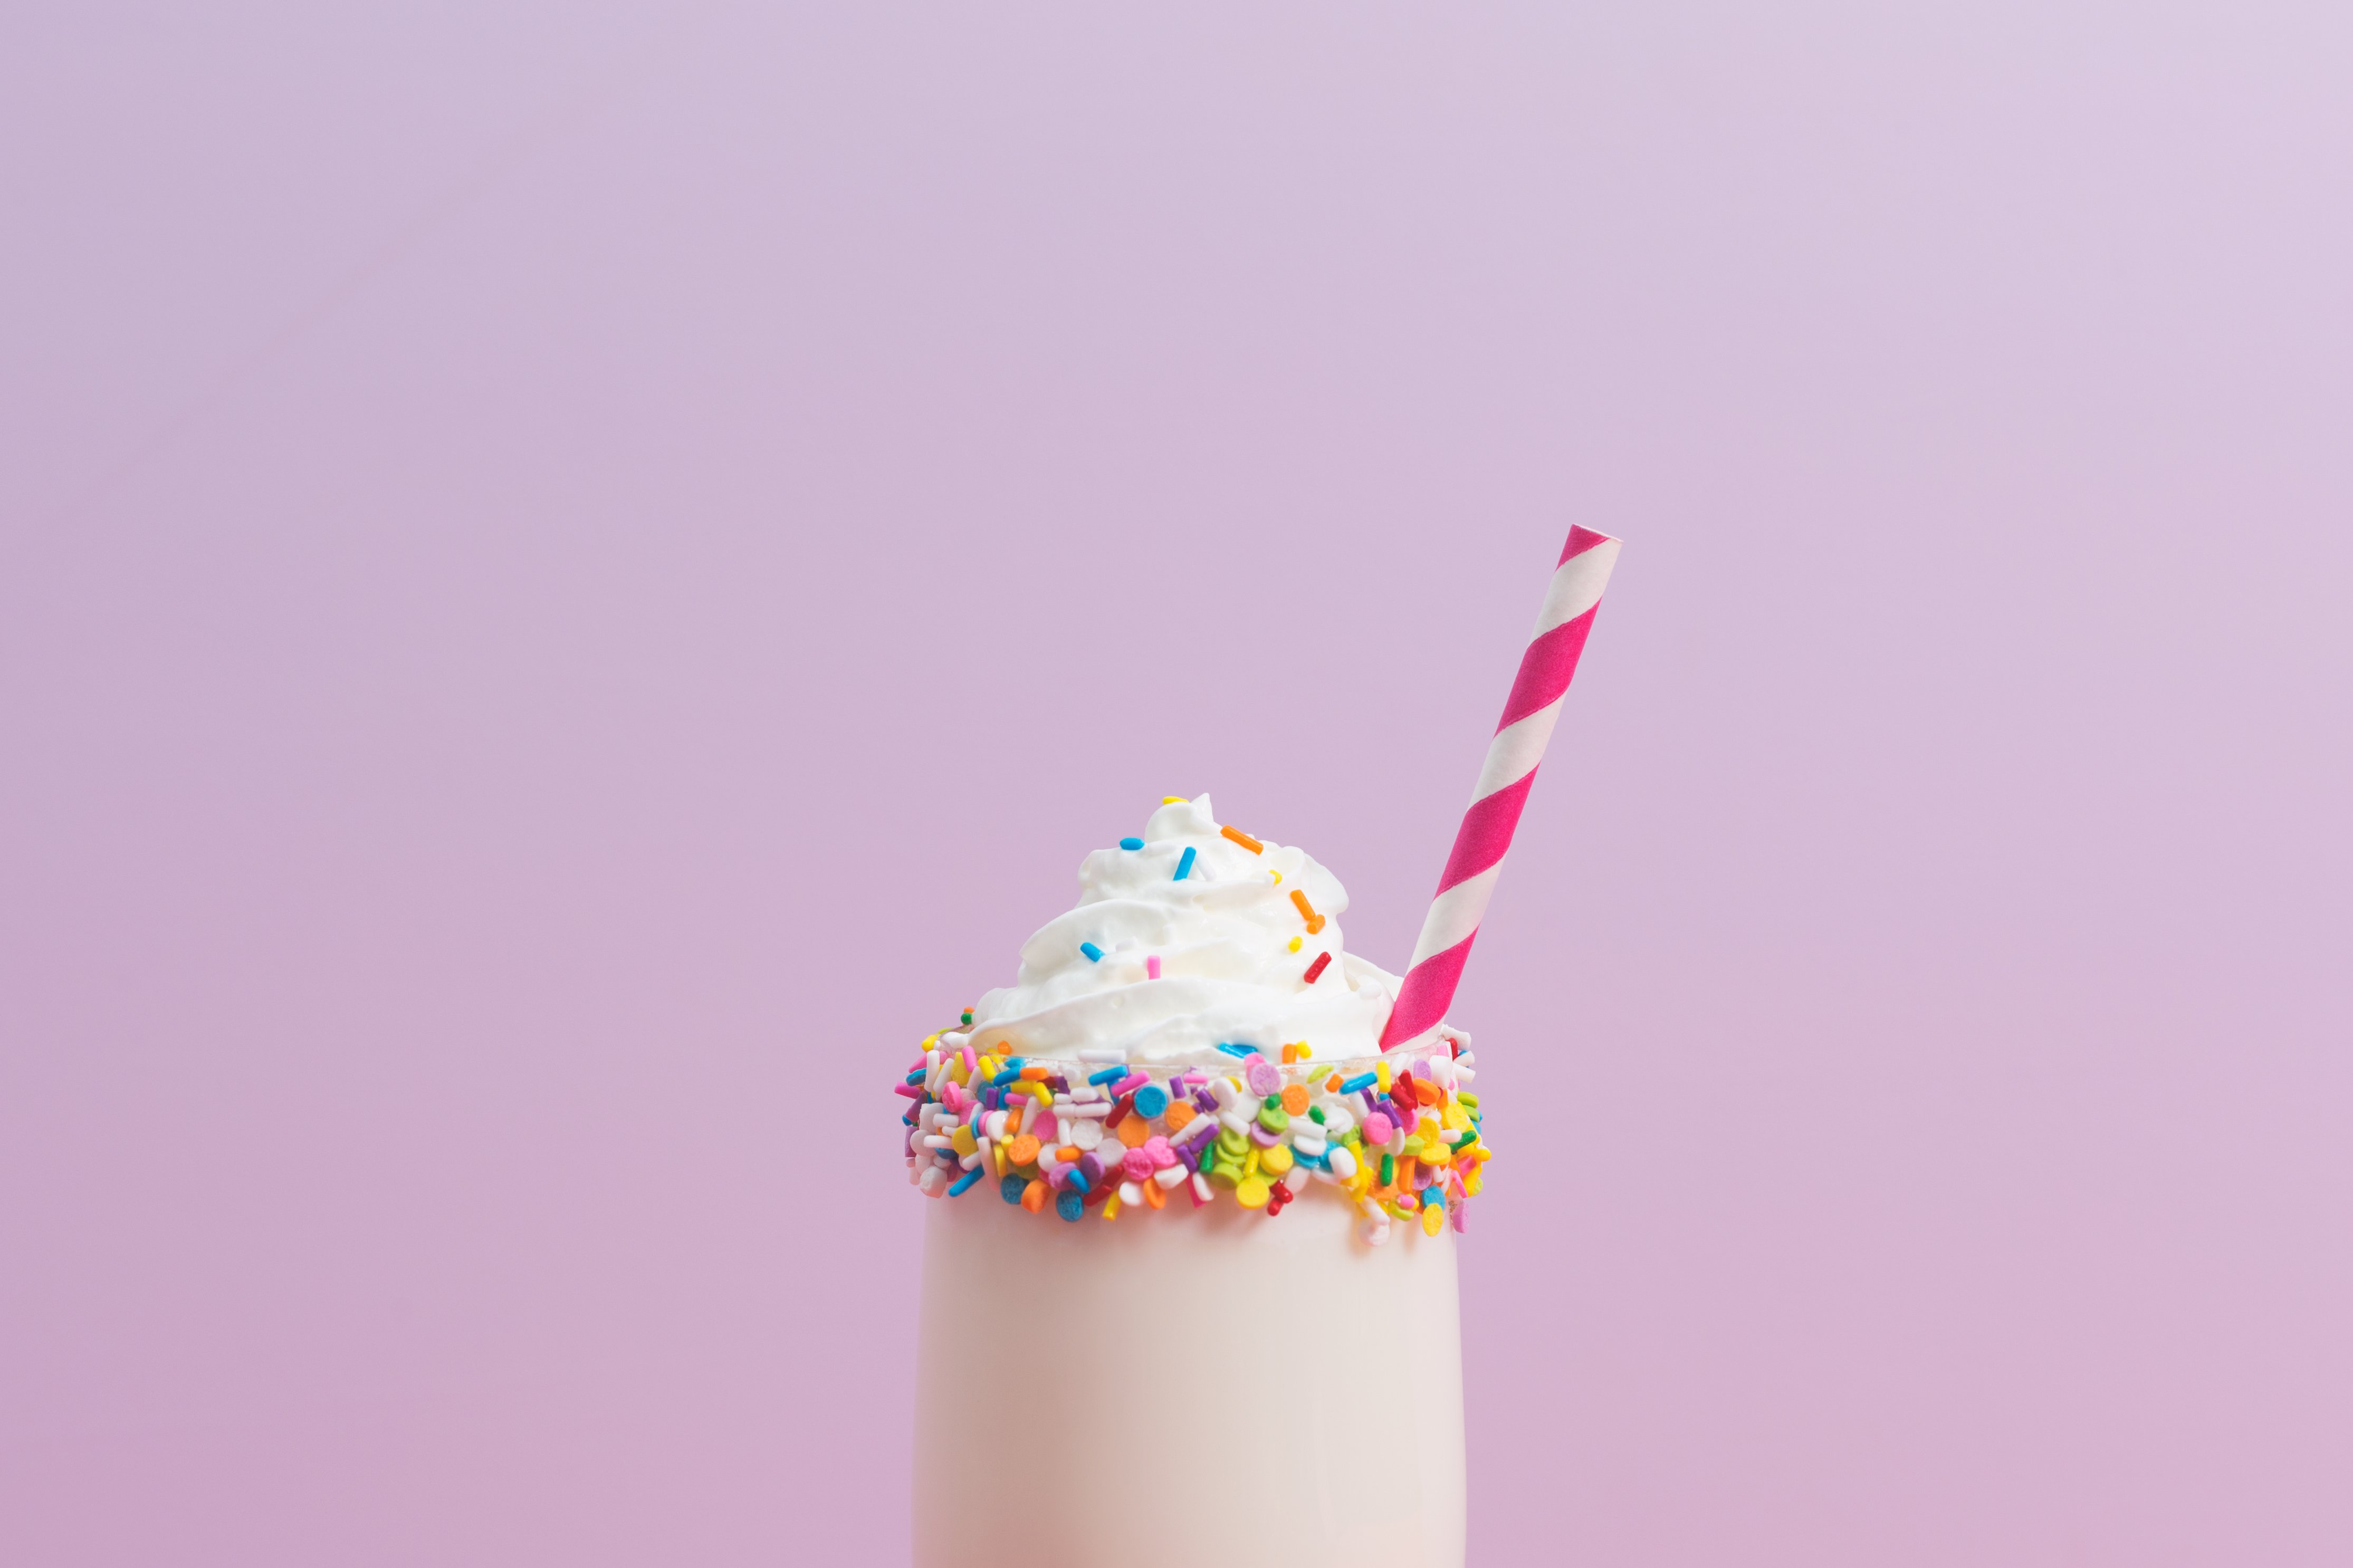 Optimize Images milkshake original